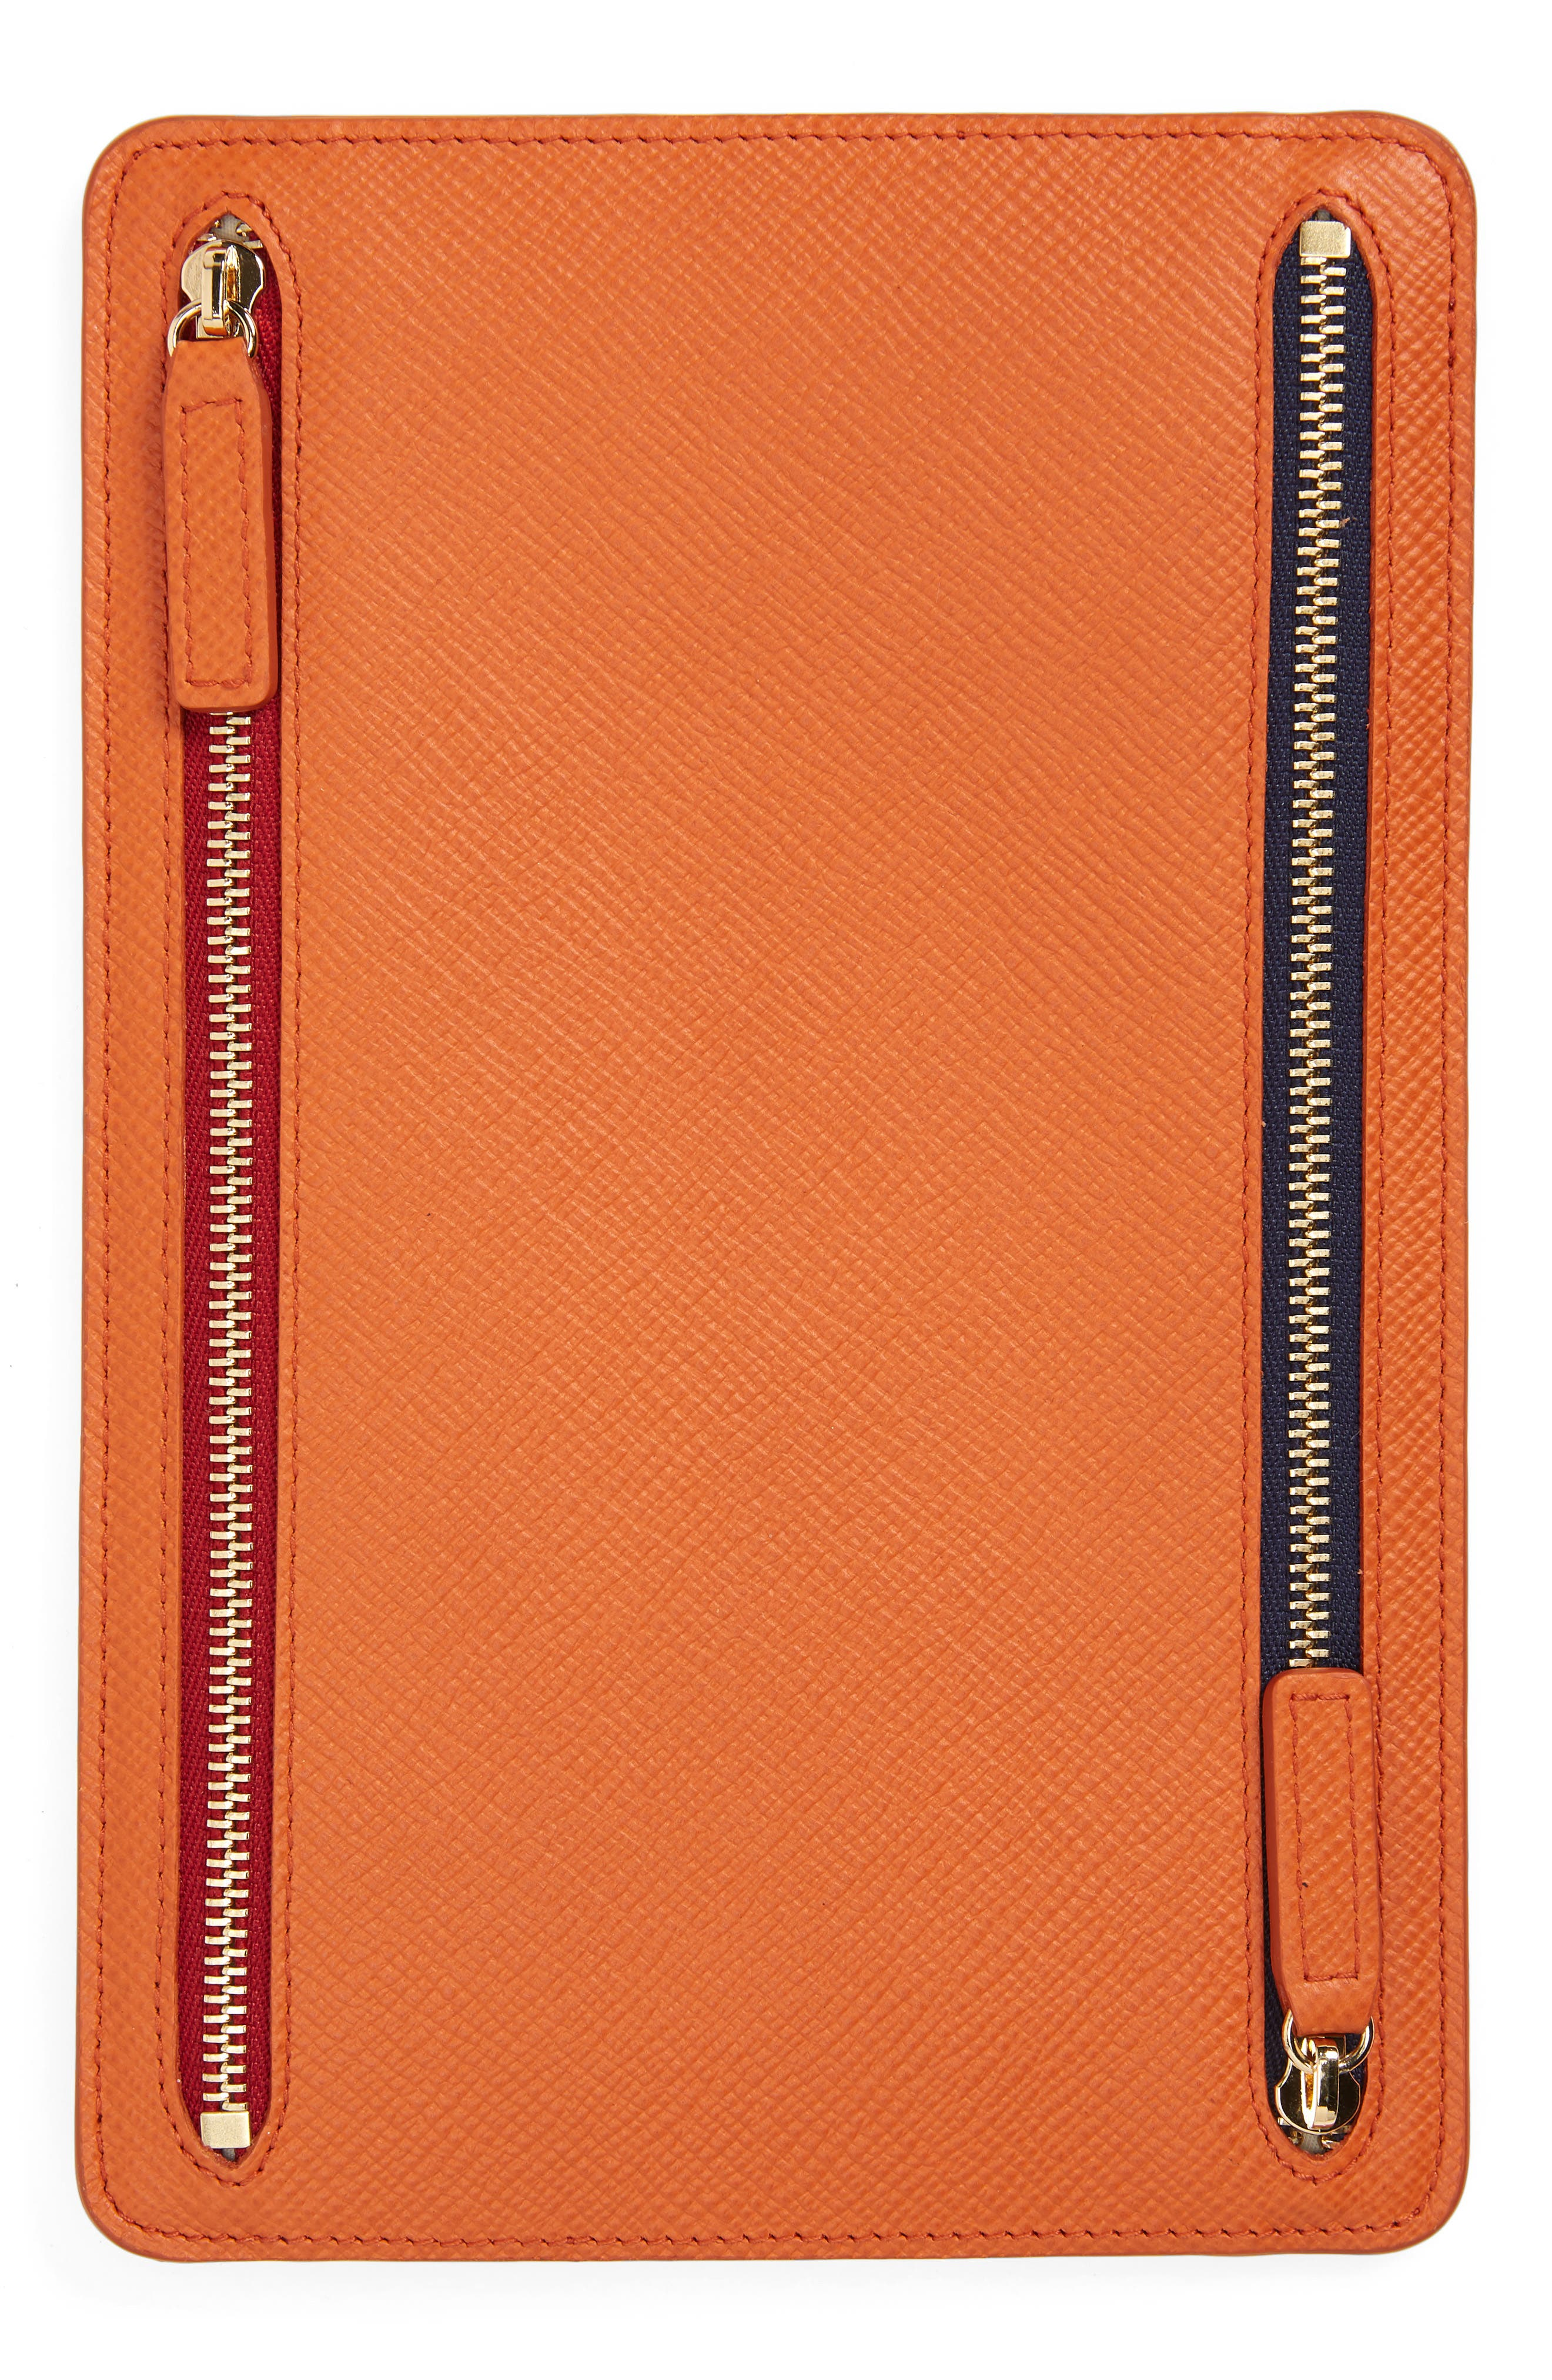 Panama Leather Currency Case,                             Alternate thumbnail 4, color,                             Papaya